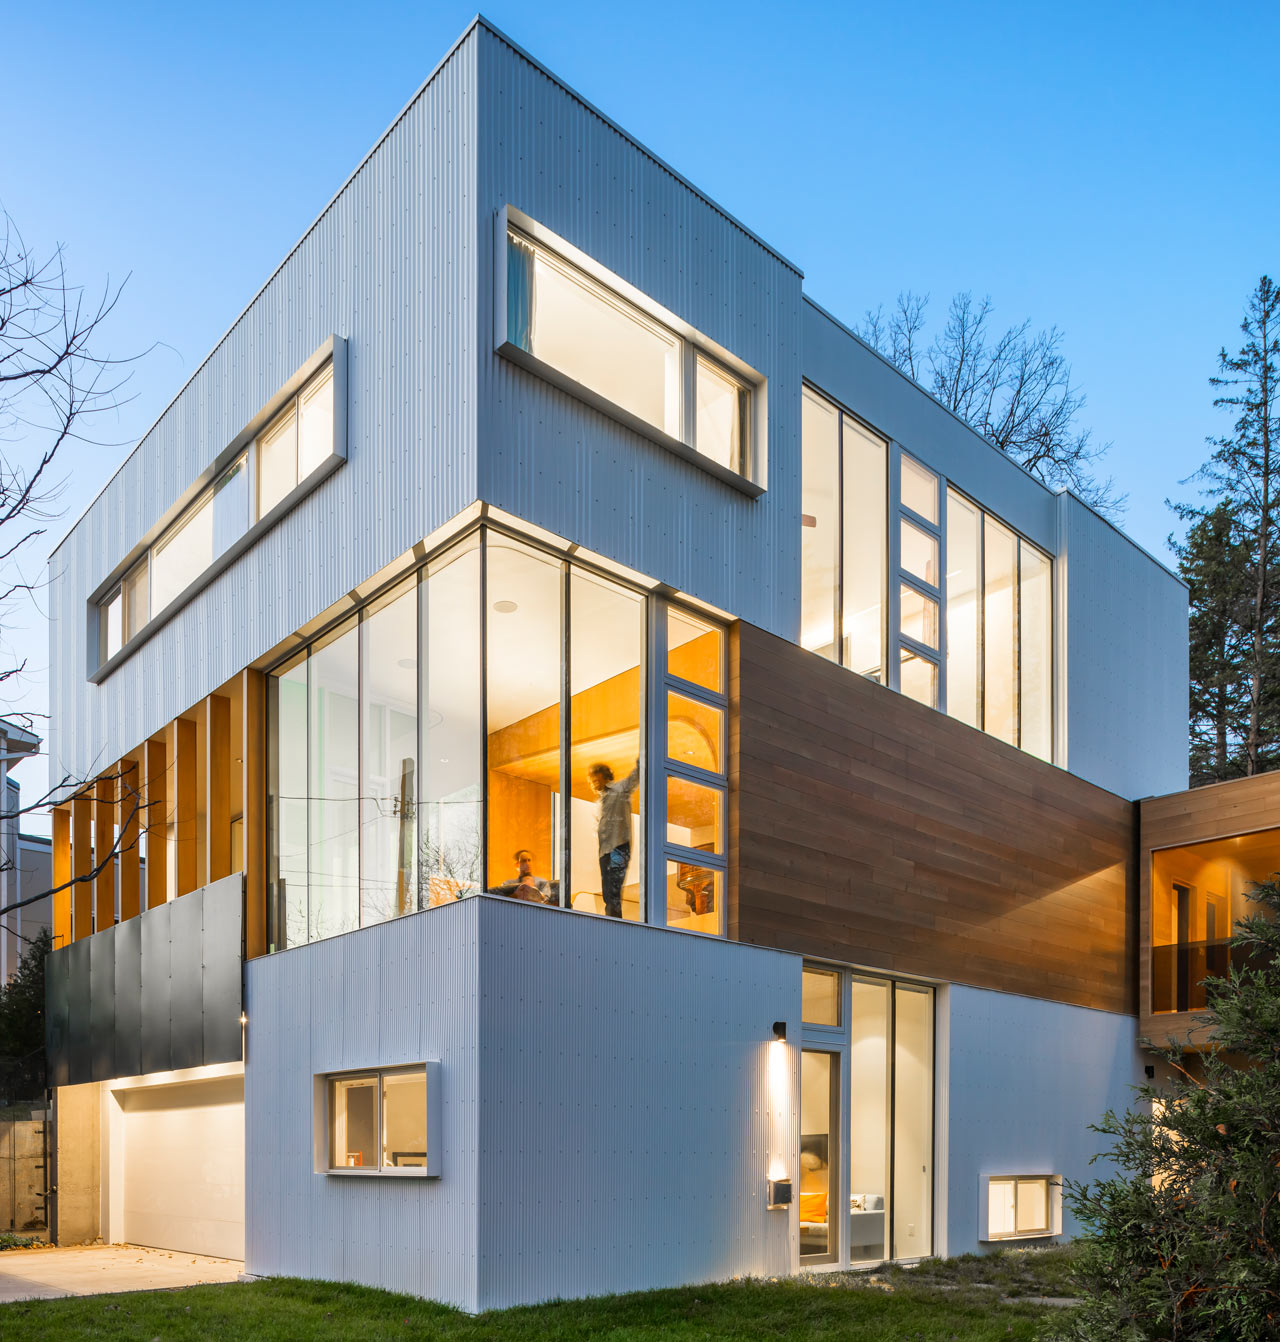 A House Composed of Stacked Blocks